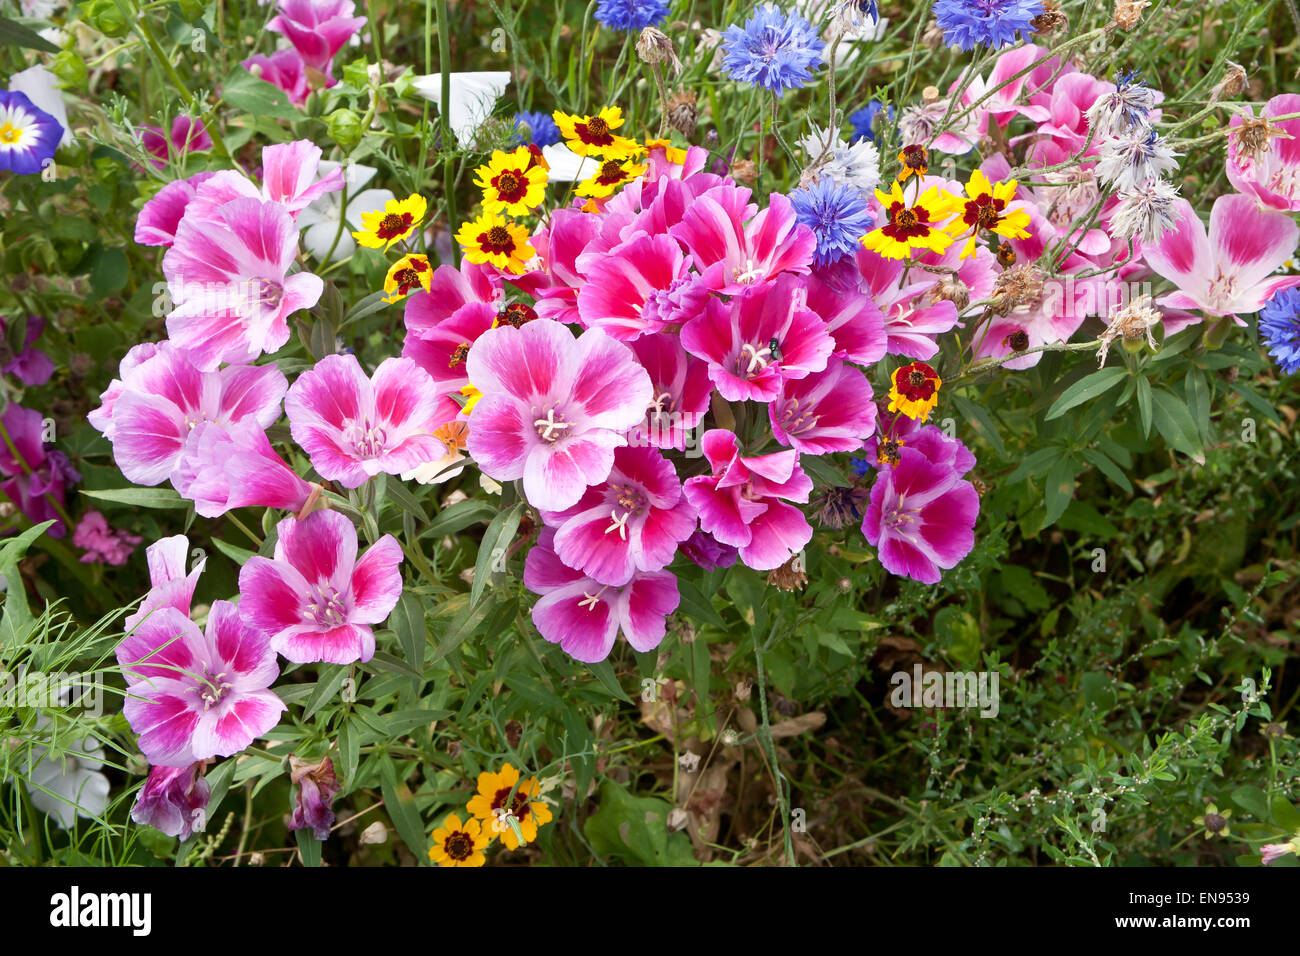 Section of wild flower meadow in bloom. Stock Photo